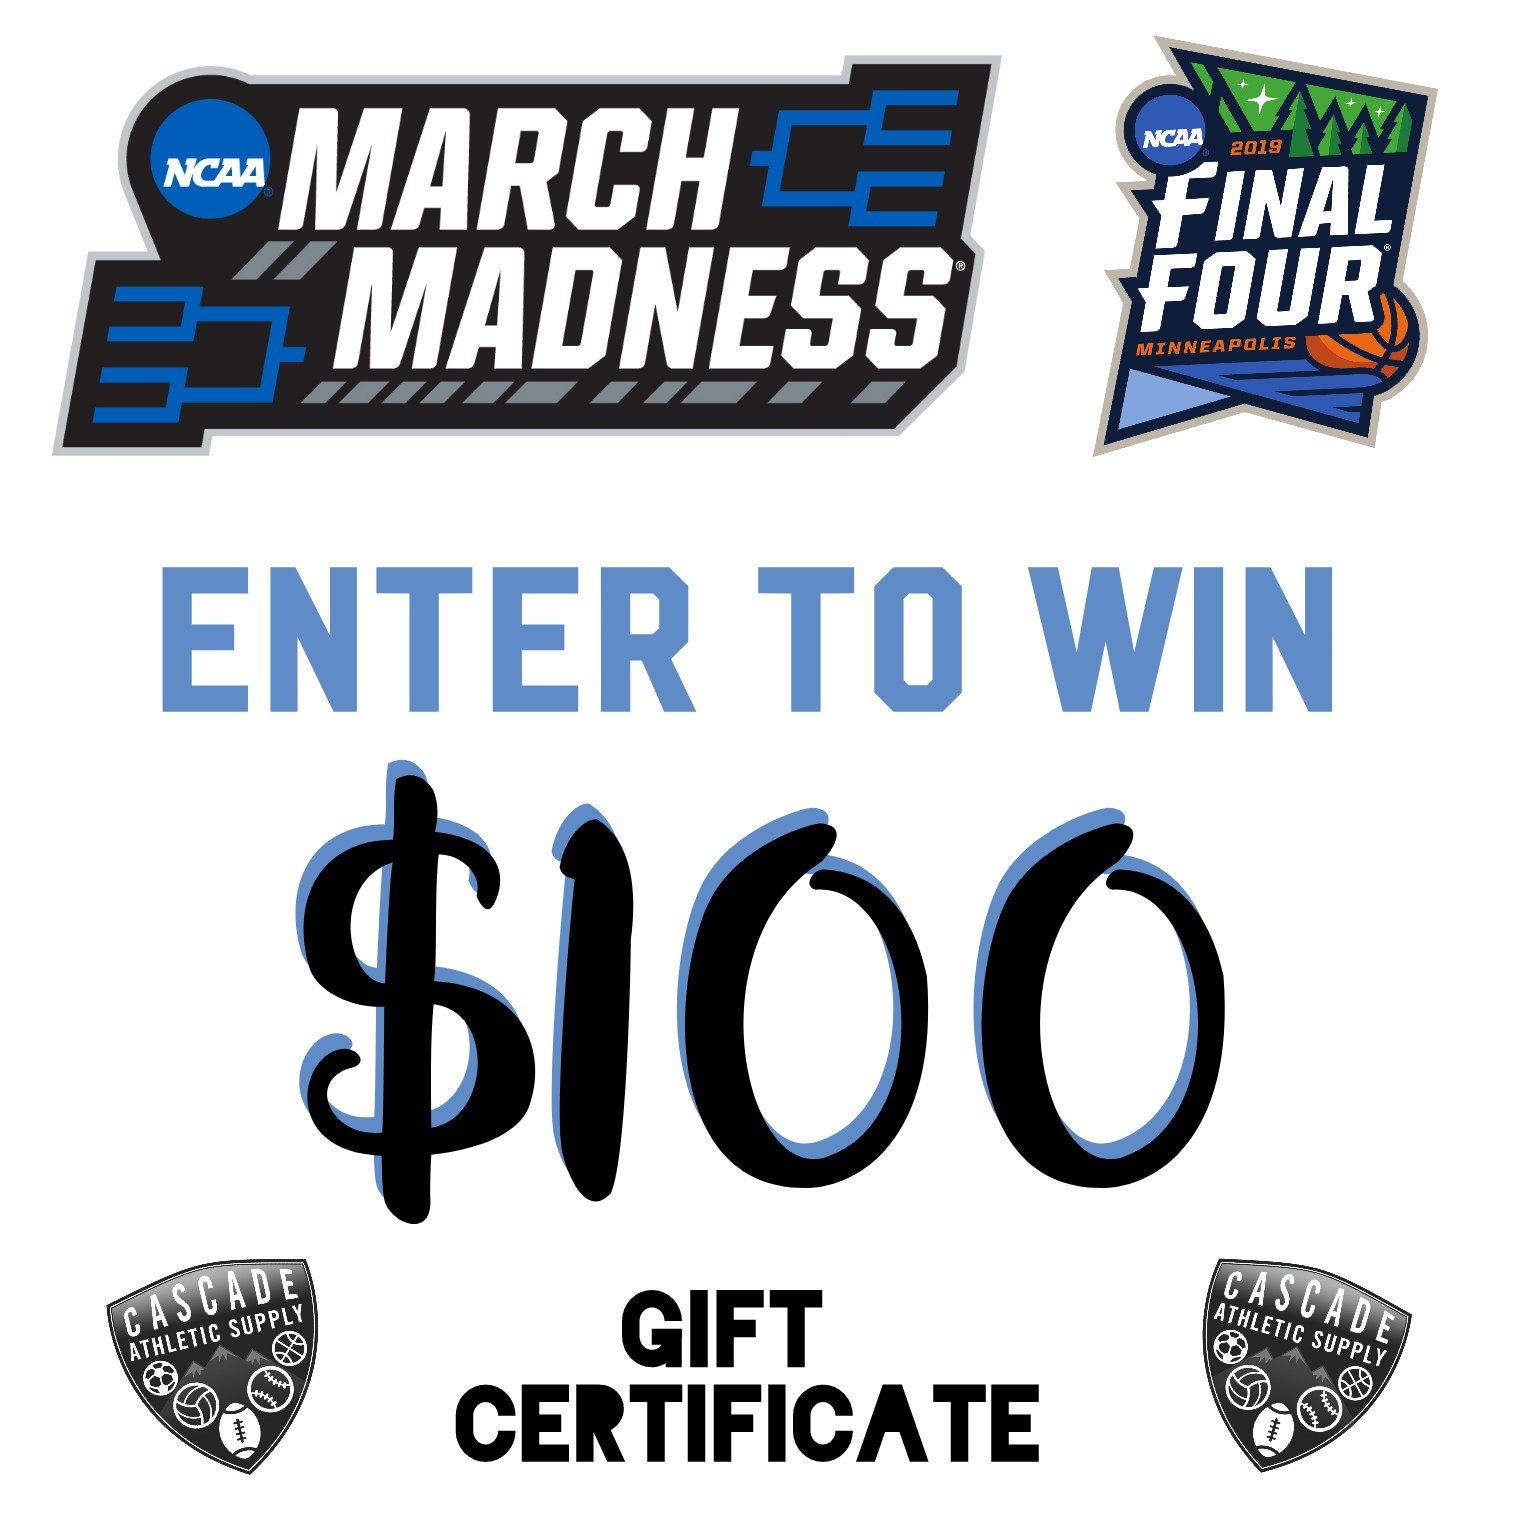 March Madness Enter to Win Cascade